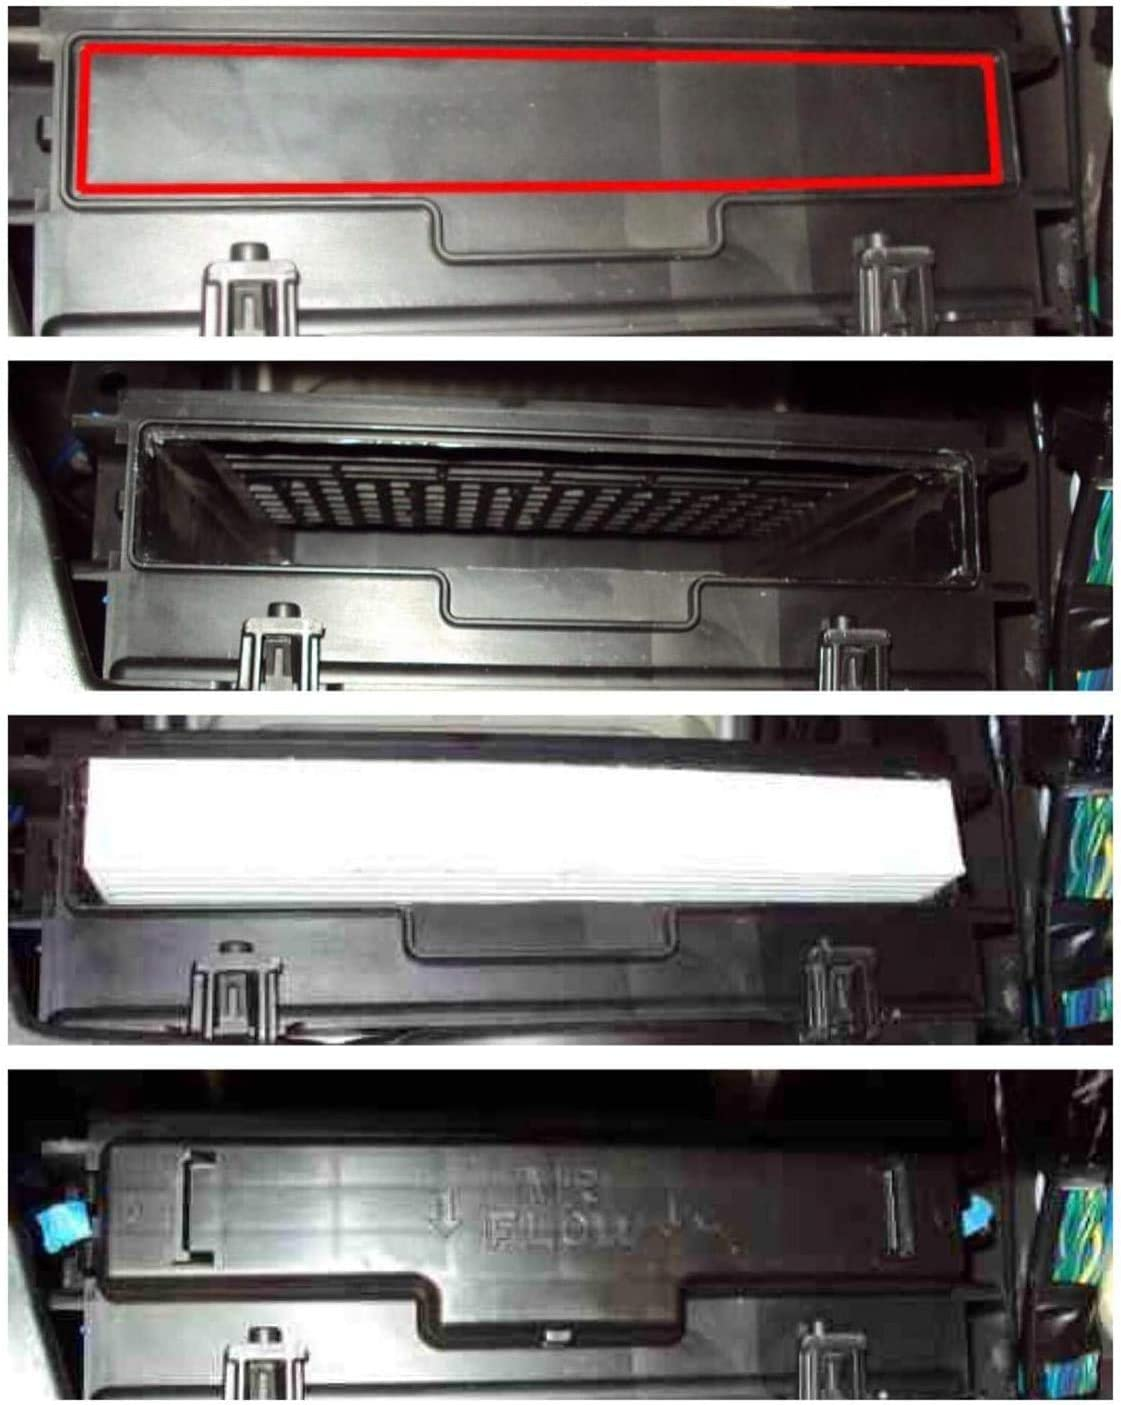 Cabin Air Filter Ac Filter Access Door Cover Compatible With 2016 2020 Dodge Ram 1500 2500 3500 2007 2012 Mazda Cx 7 Air Filters Accessories Replacement Parts Opticapatriciagarcia Com